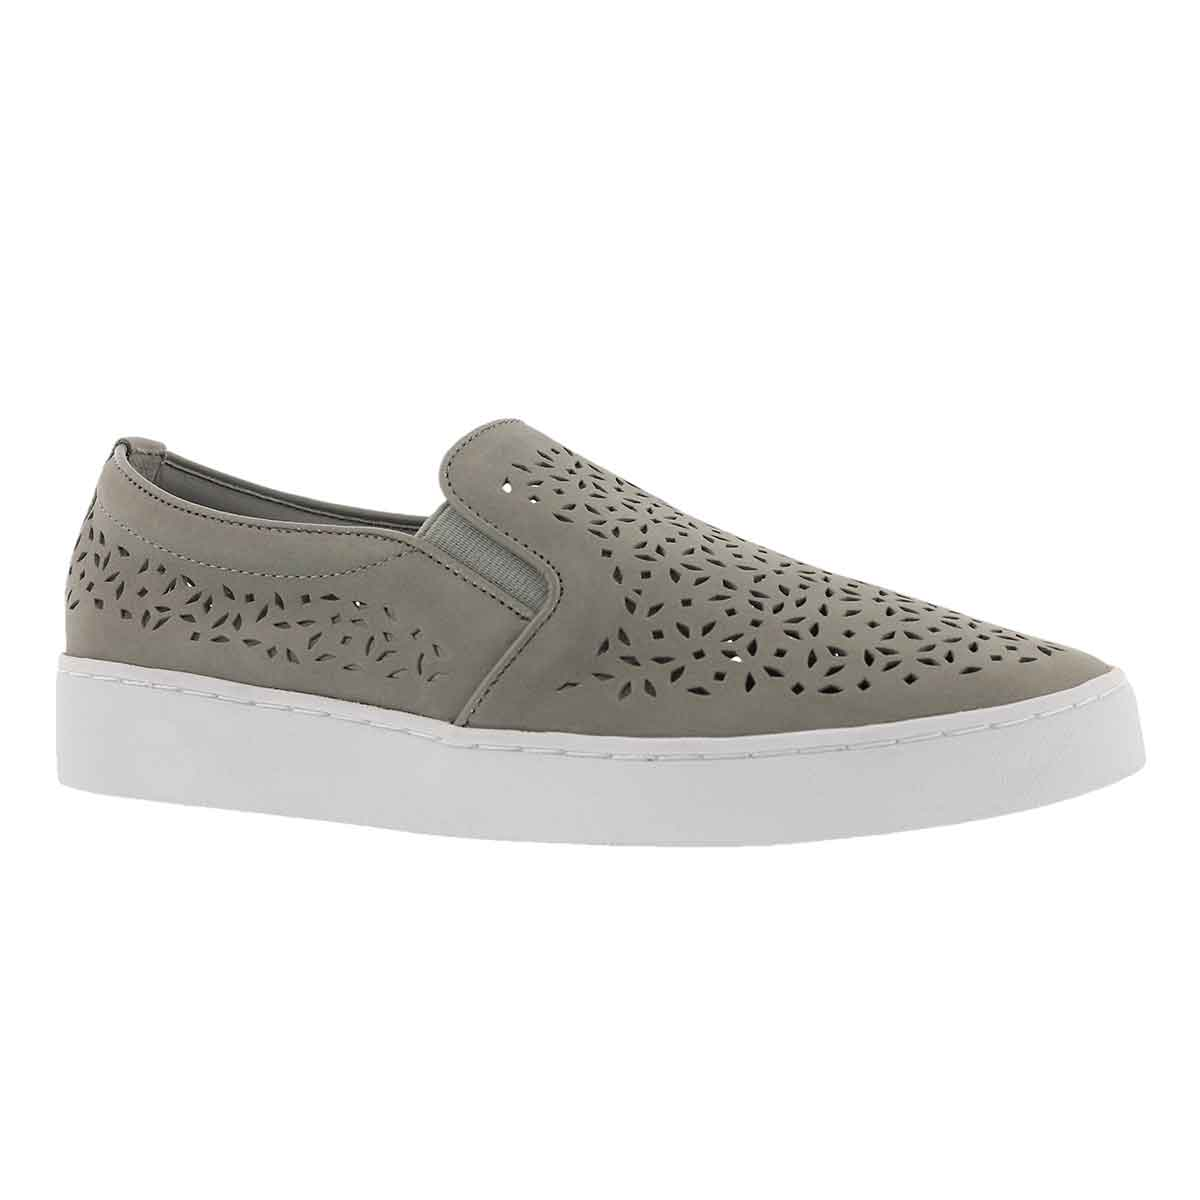 Women's MIDI PERF grey casual slip on shoes